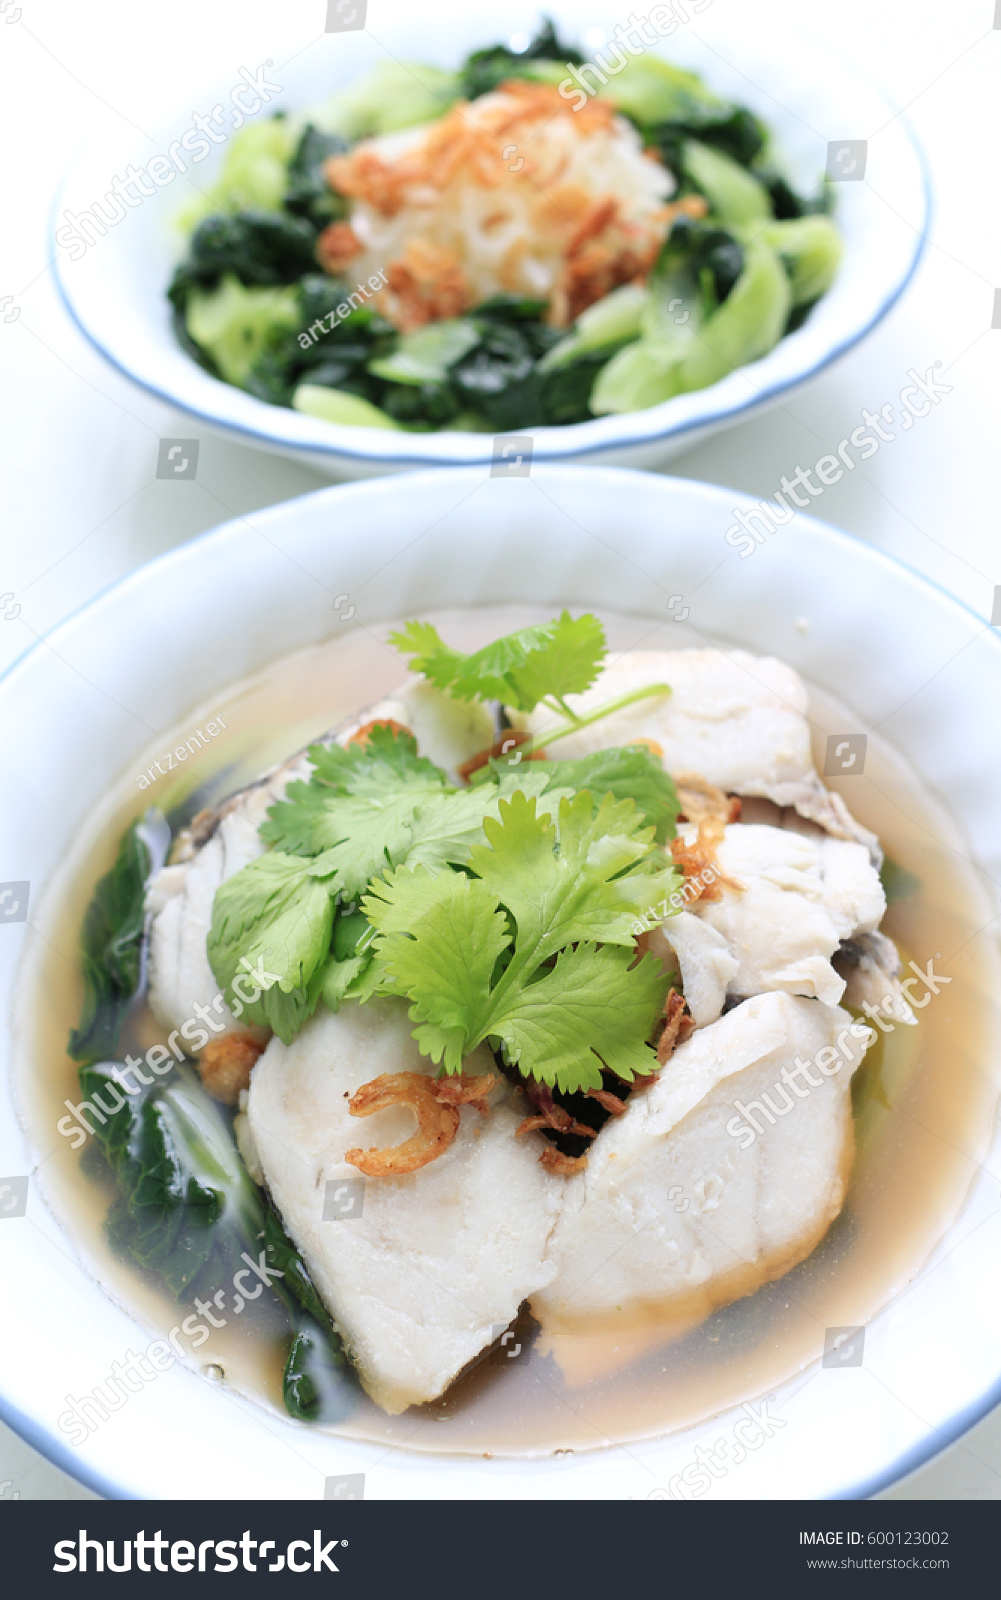 Homemade sea bass fish noodles gourmet stock photo for Homemade fish food